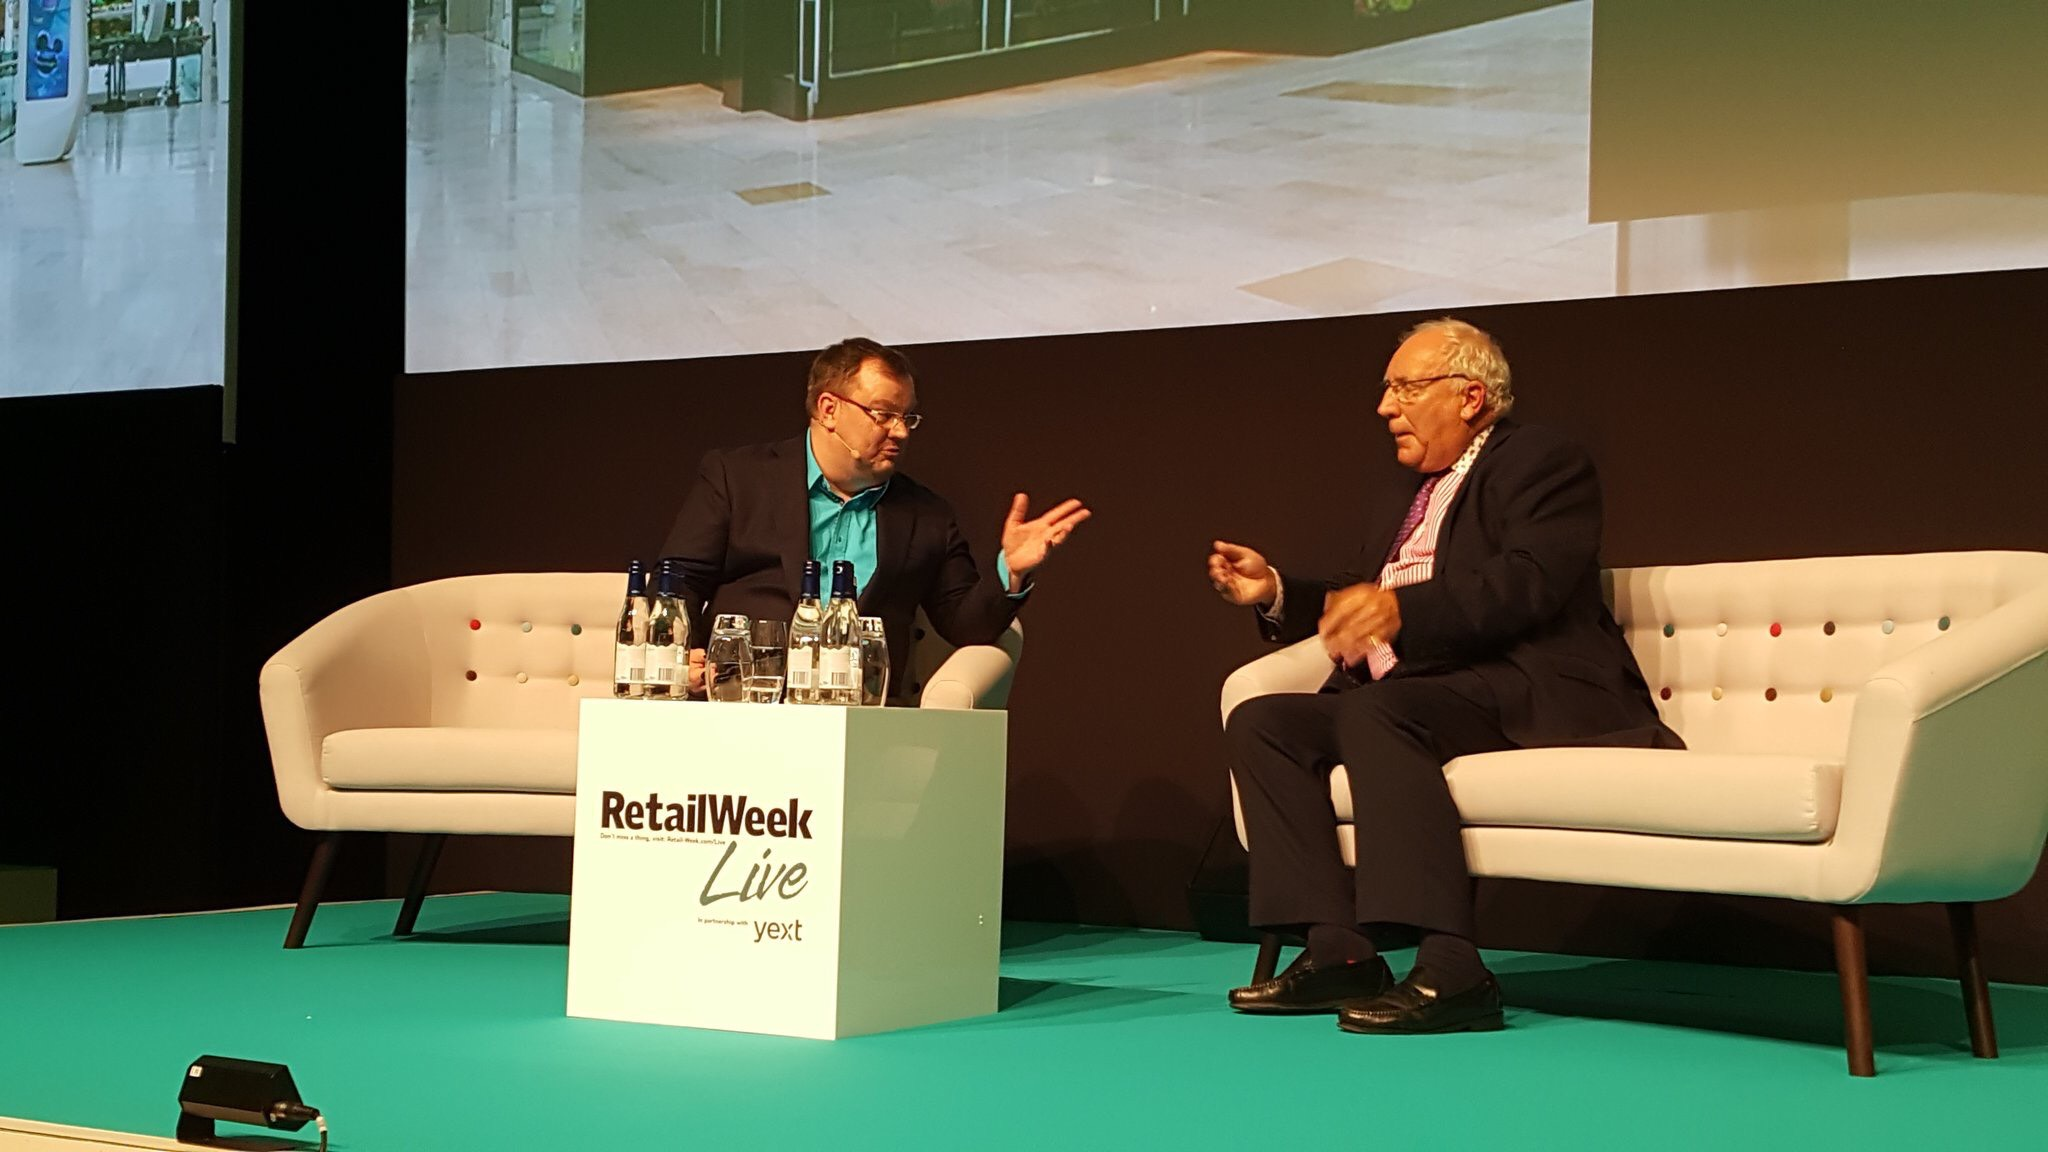 Declan Curry has a conversation the audience really enjoyed with John Timpson, the chairman of the family-owned Timpson chain, offering shoe repairs, key cutting and dry cleaning at Retail Week Live 2017.